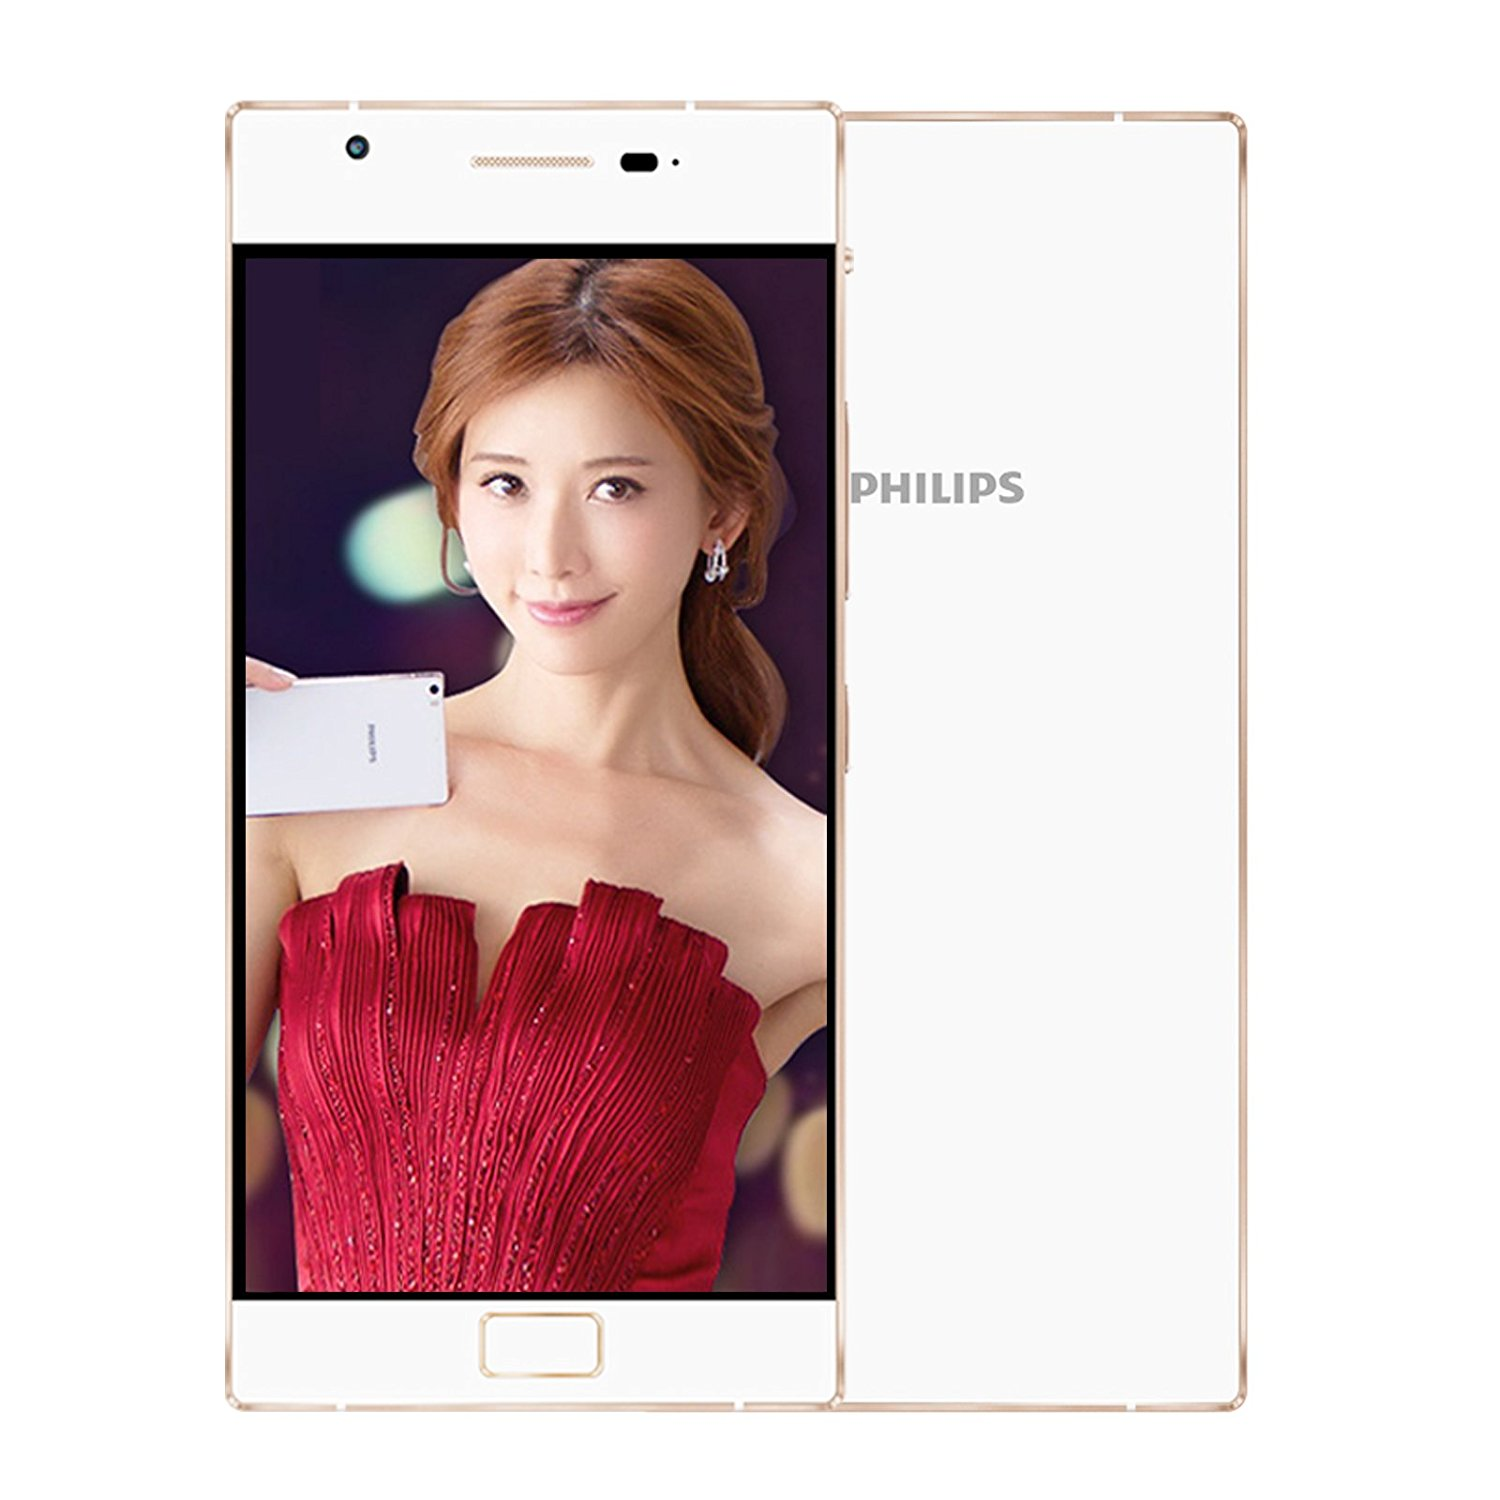 Mobile Communications Philips X818 champagne gold all Netcom 4G mobile phone dual card dual standby